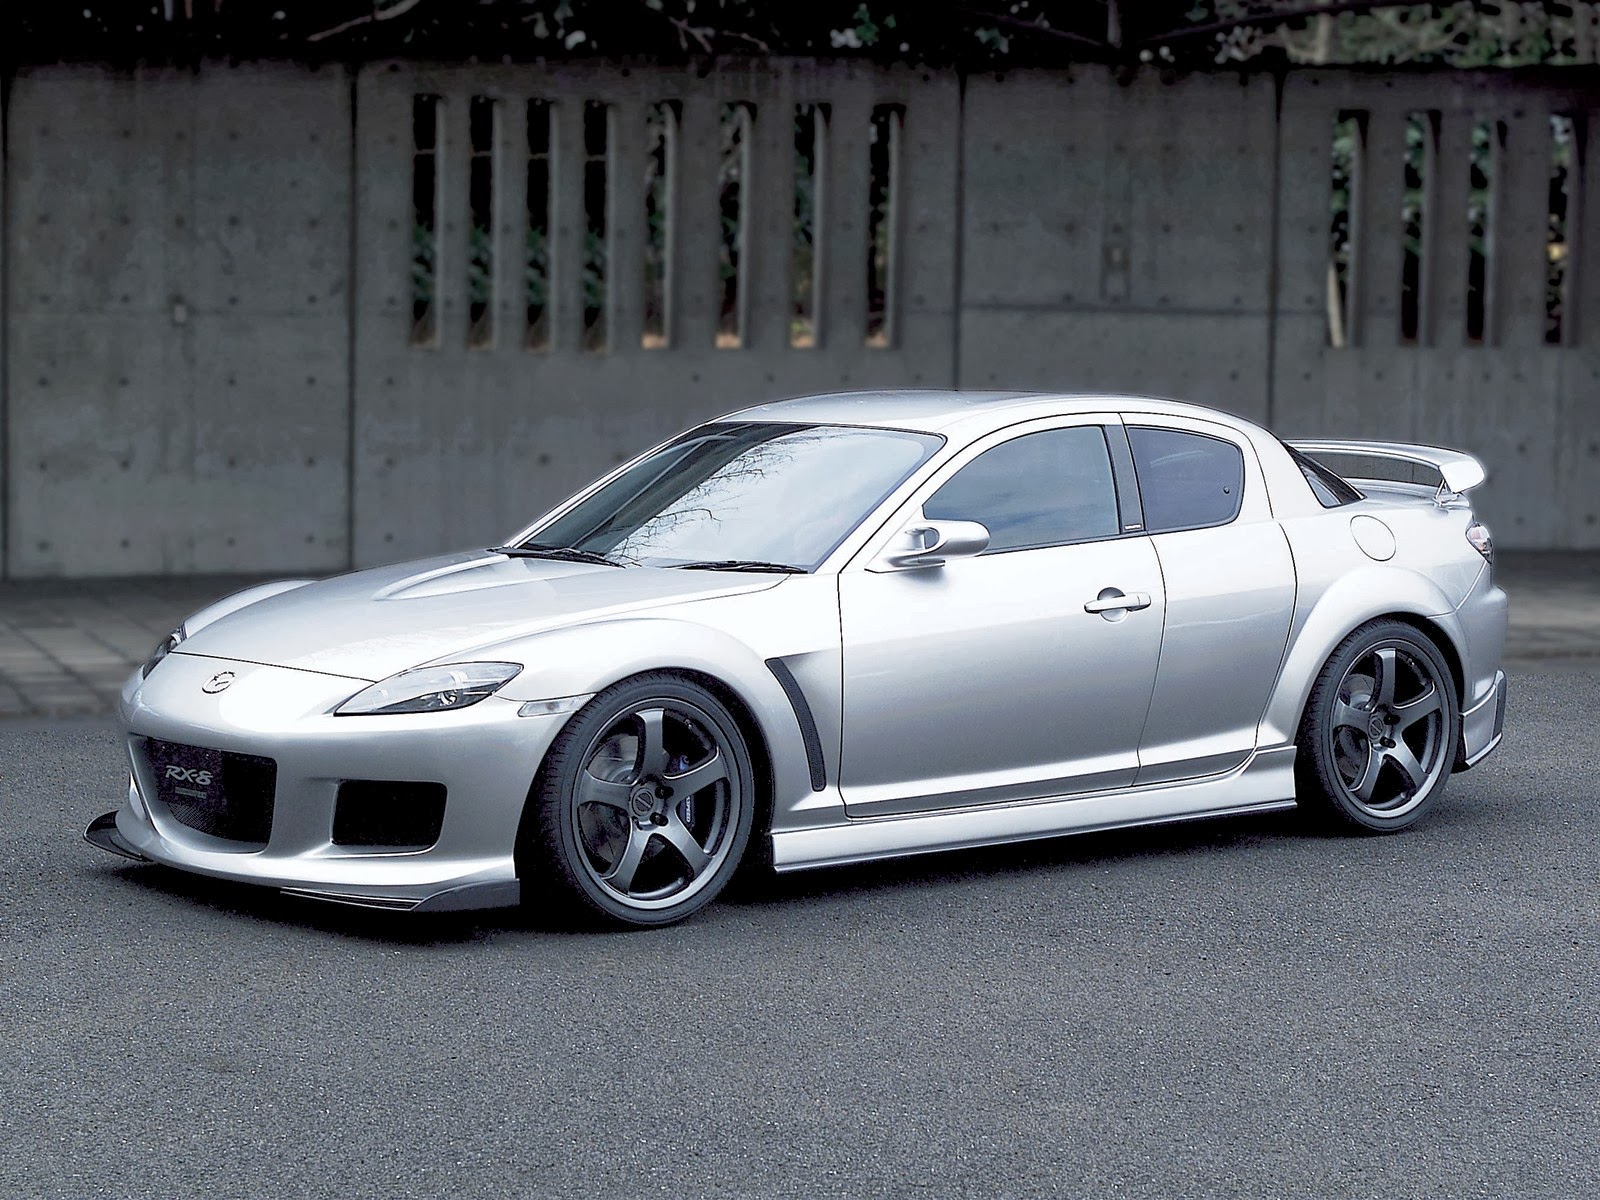 Superb Mazda RX 8 Fantastic Car